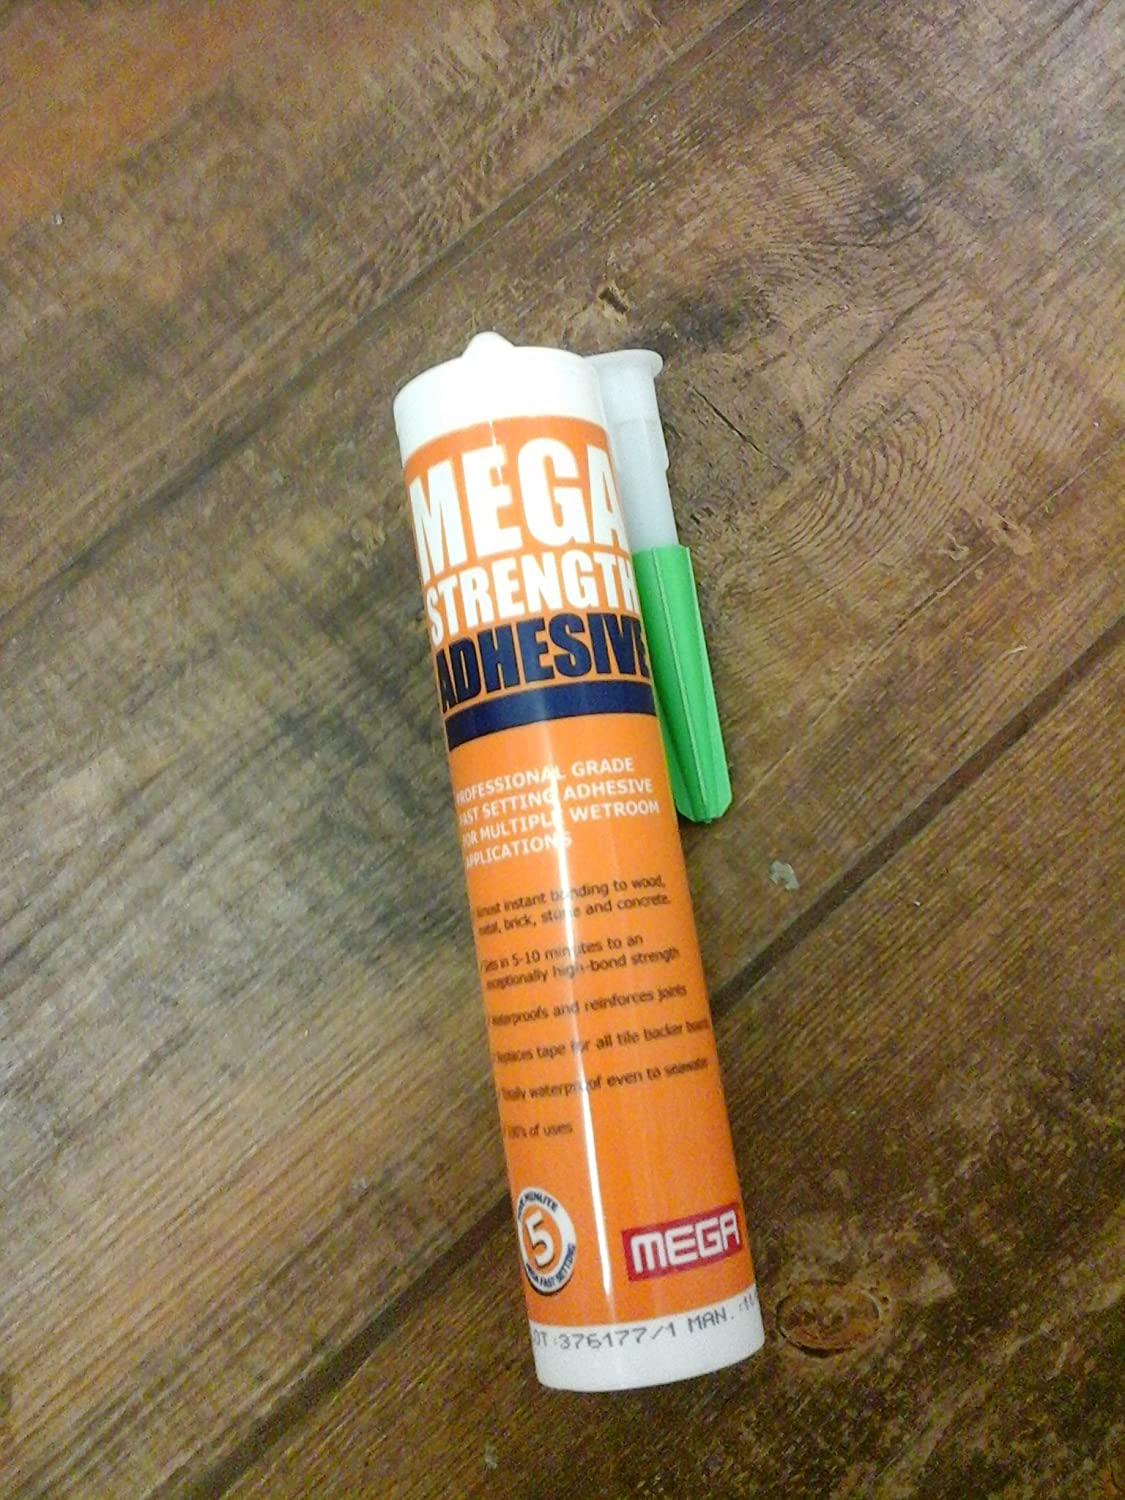 NO MORE PLY-Megastrength Adhesive 305ml